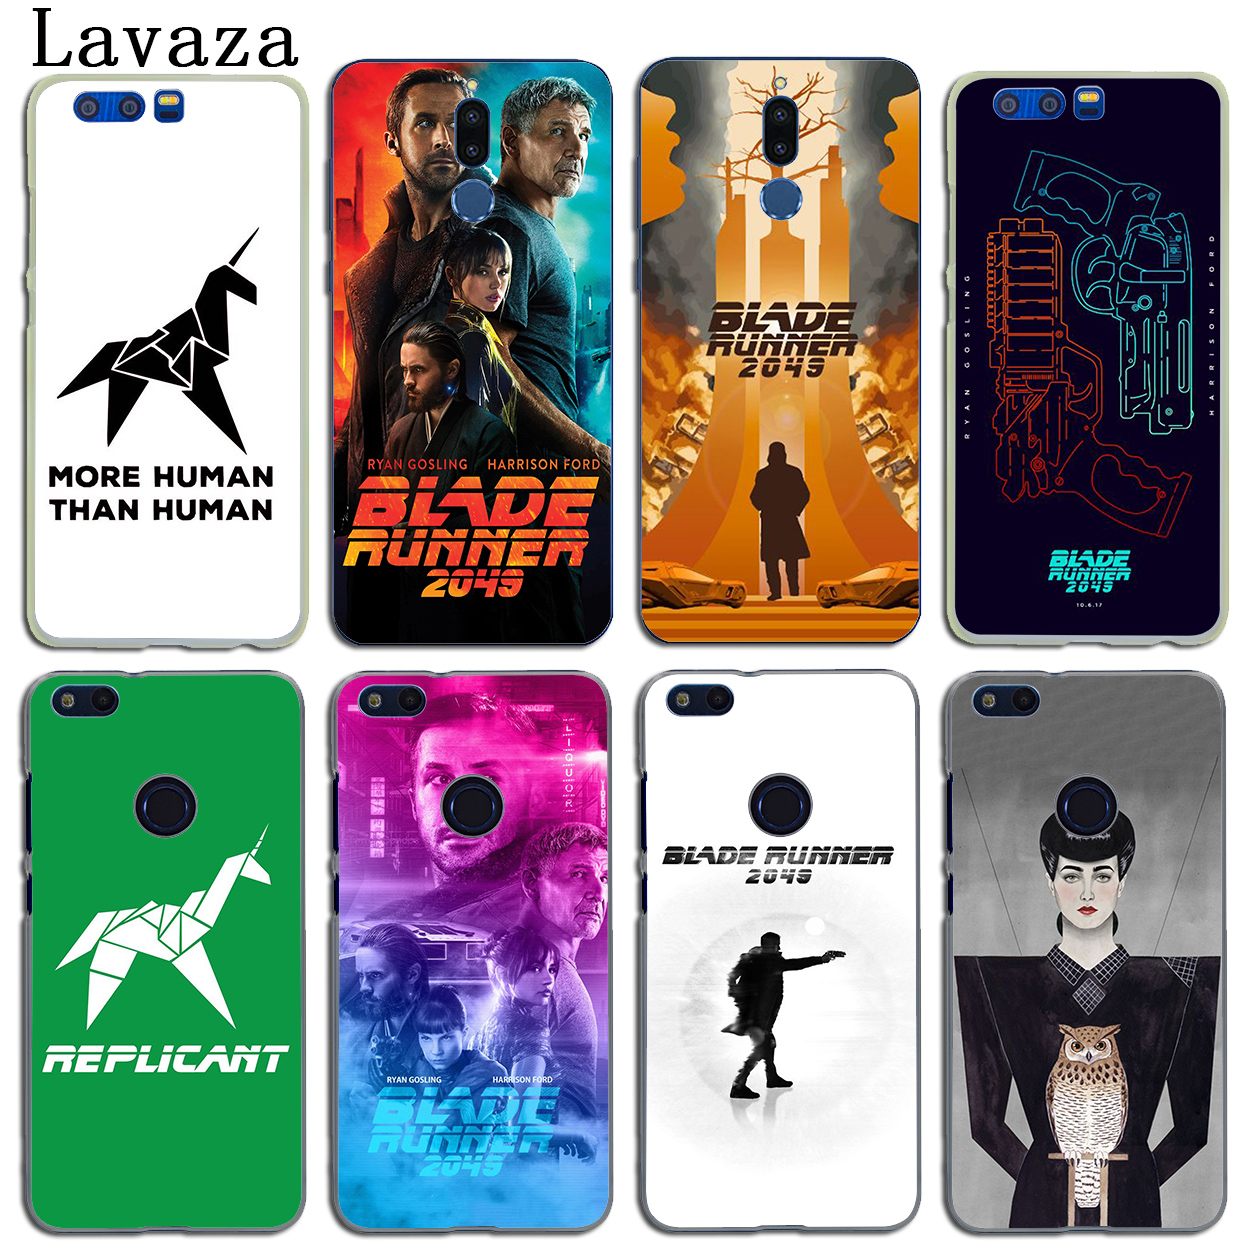 Lavaza Blade Runner 2049 film Case for Huawei Y6 Y5 Y3 II Y7 2017 2018 Nova 2 Plus 2S 2i Honor 10 9 8 Lite 7 6 6A 7X 6X 6C Pro ...